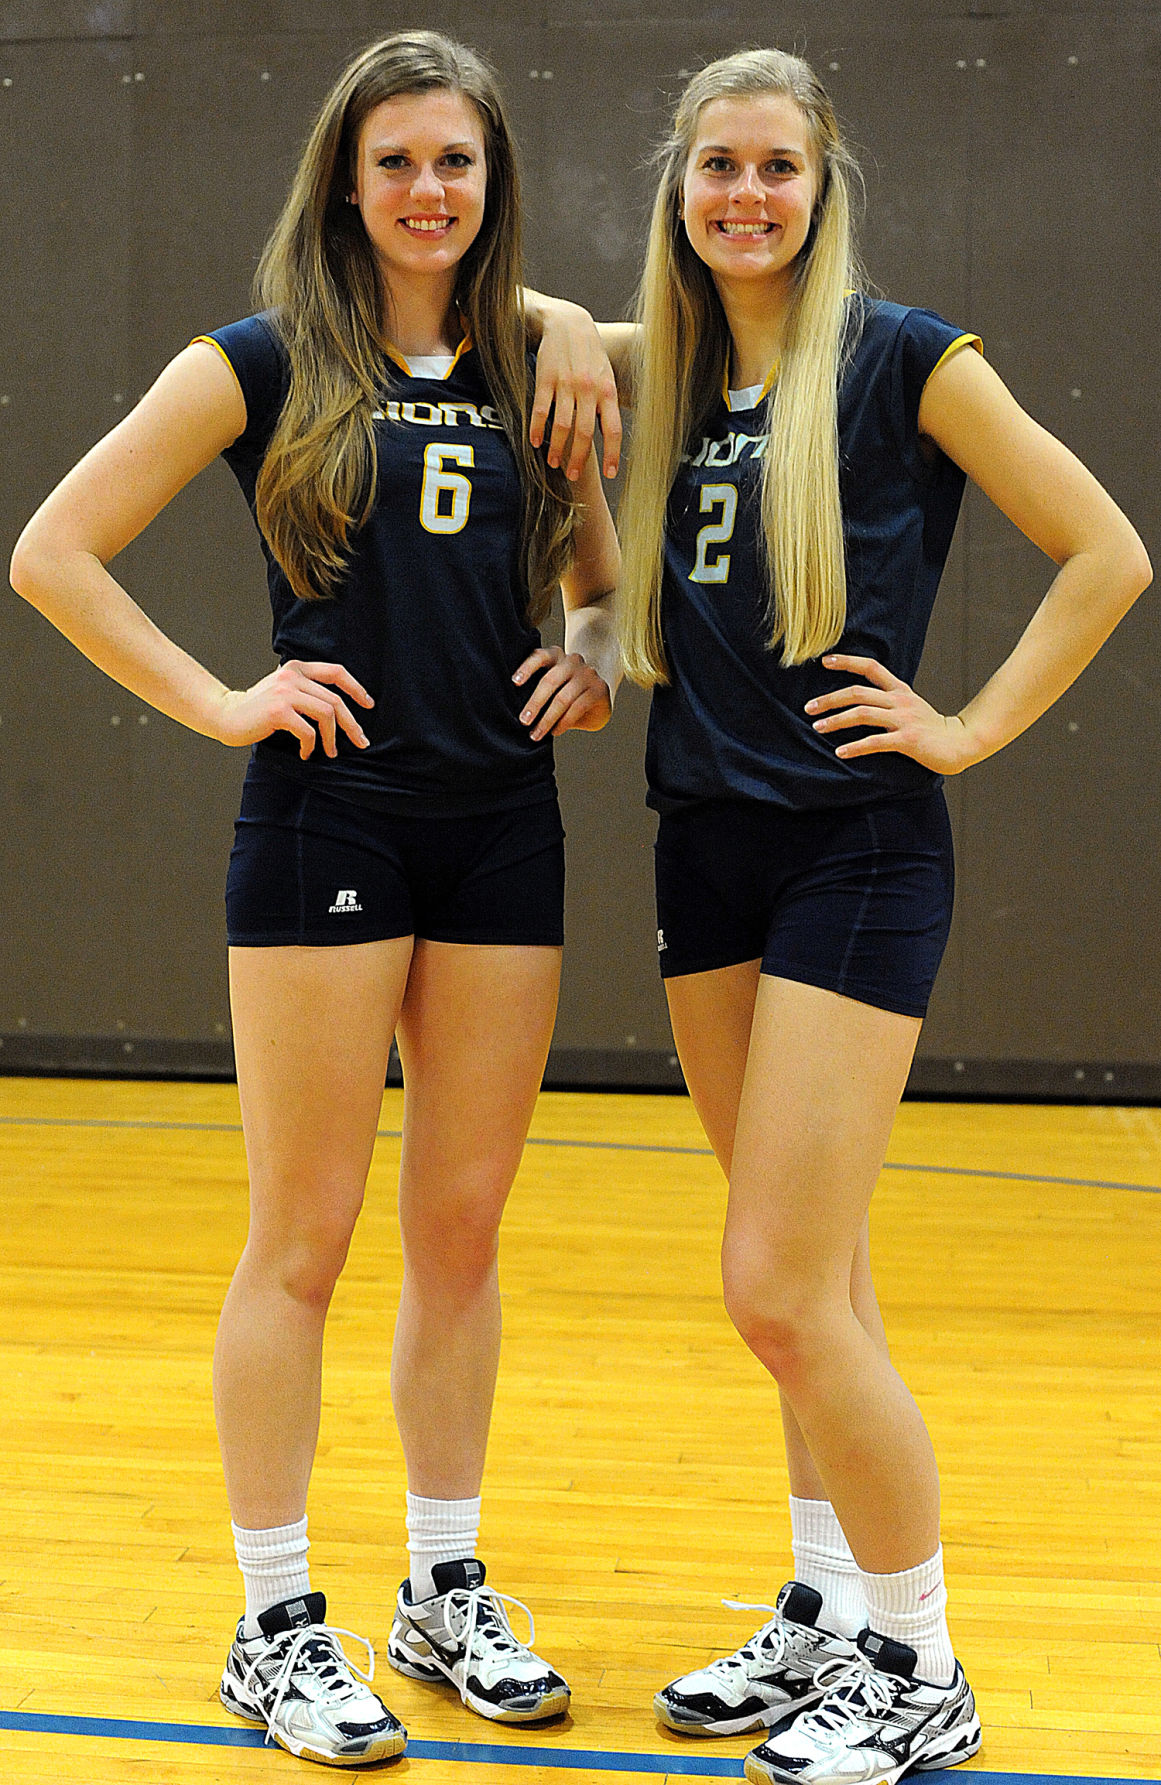 unbelievable  twin volleyball players carry on wacker